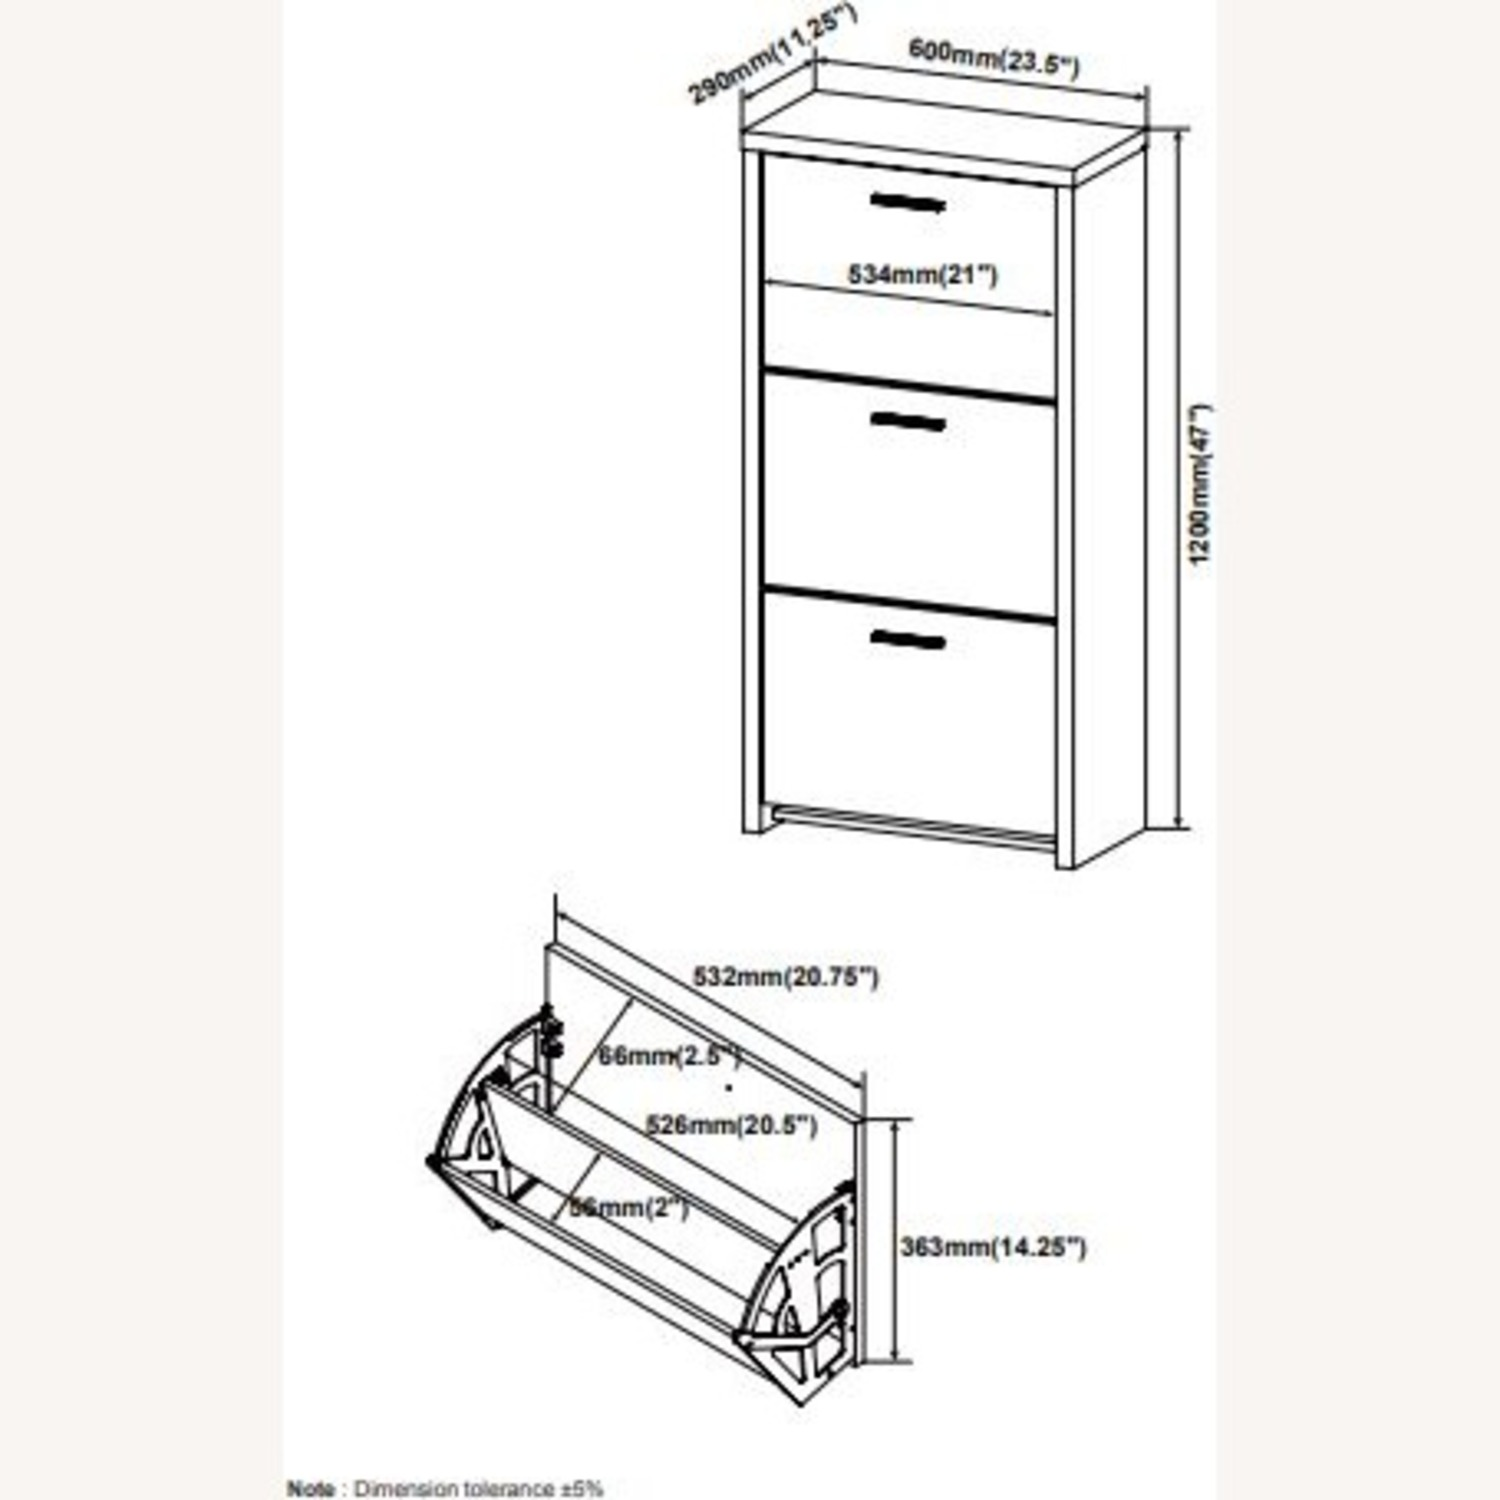 3-Compartment Shoe Storage Cabinet in Black Finish - image-4